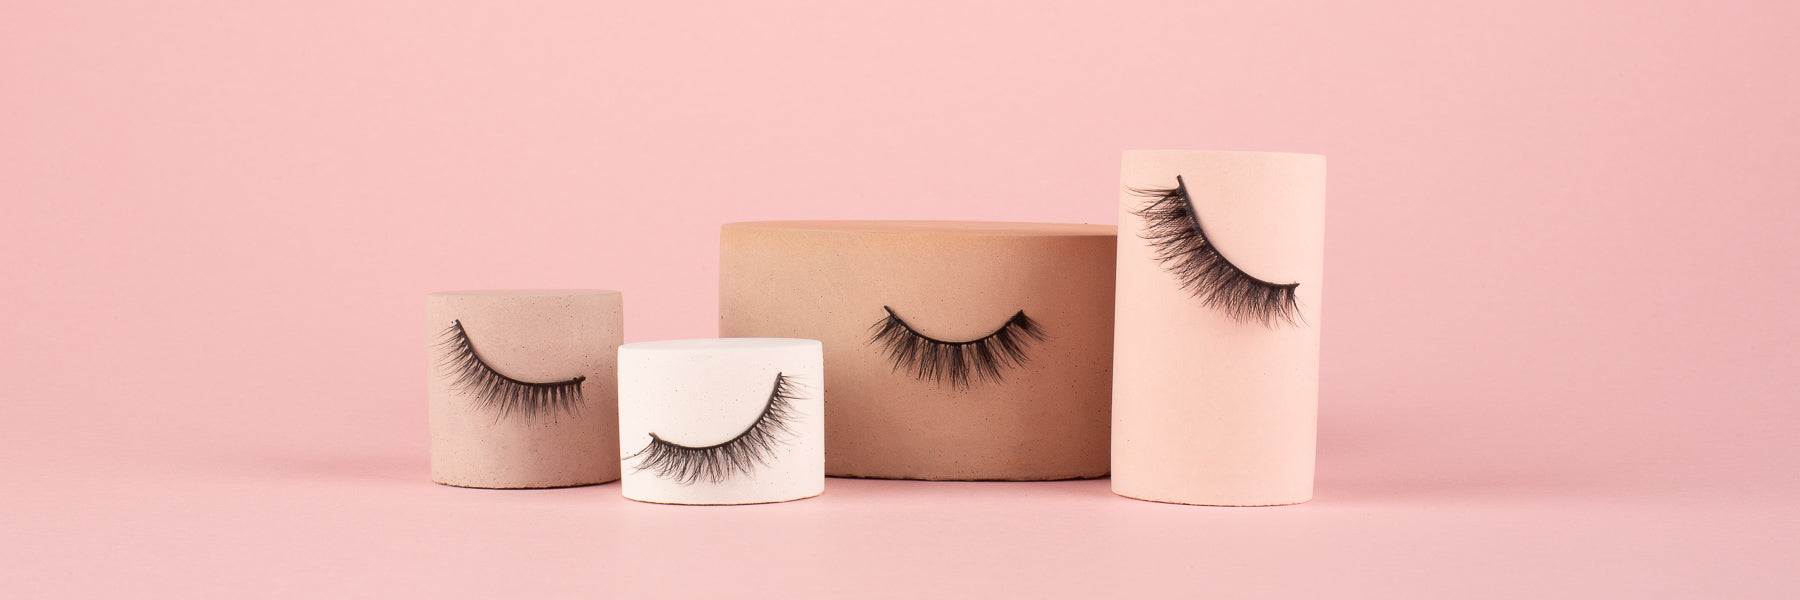 wing it luxury vegan silk system lashes on props